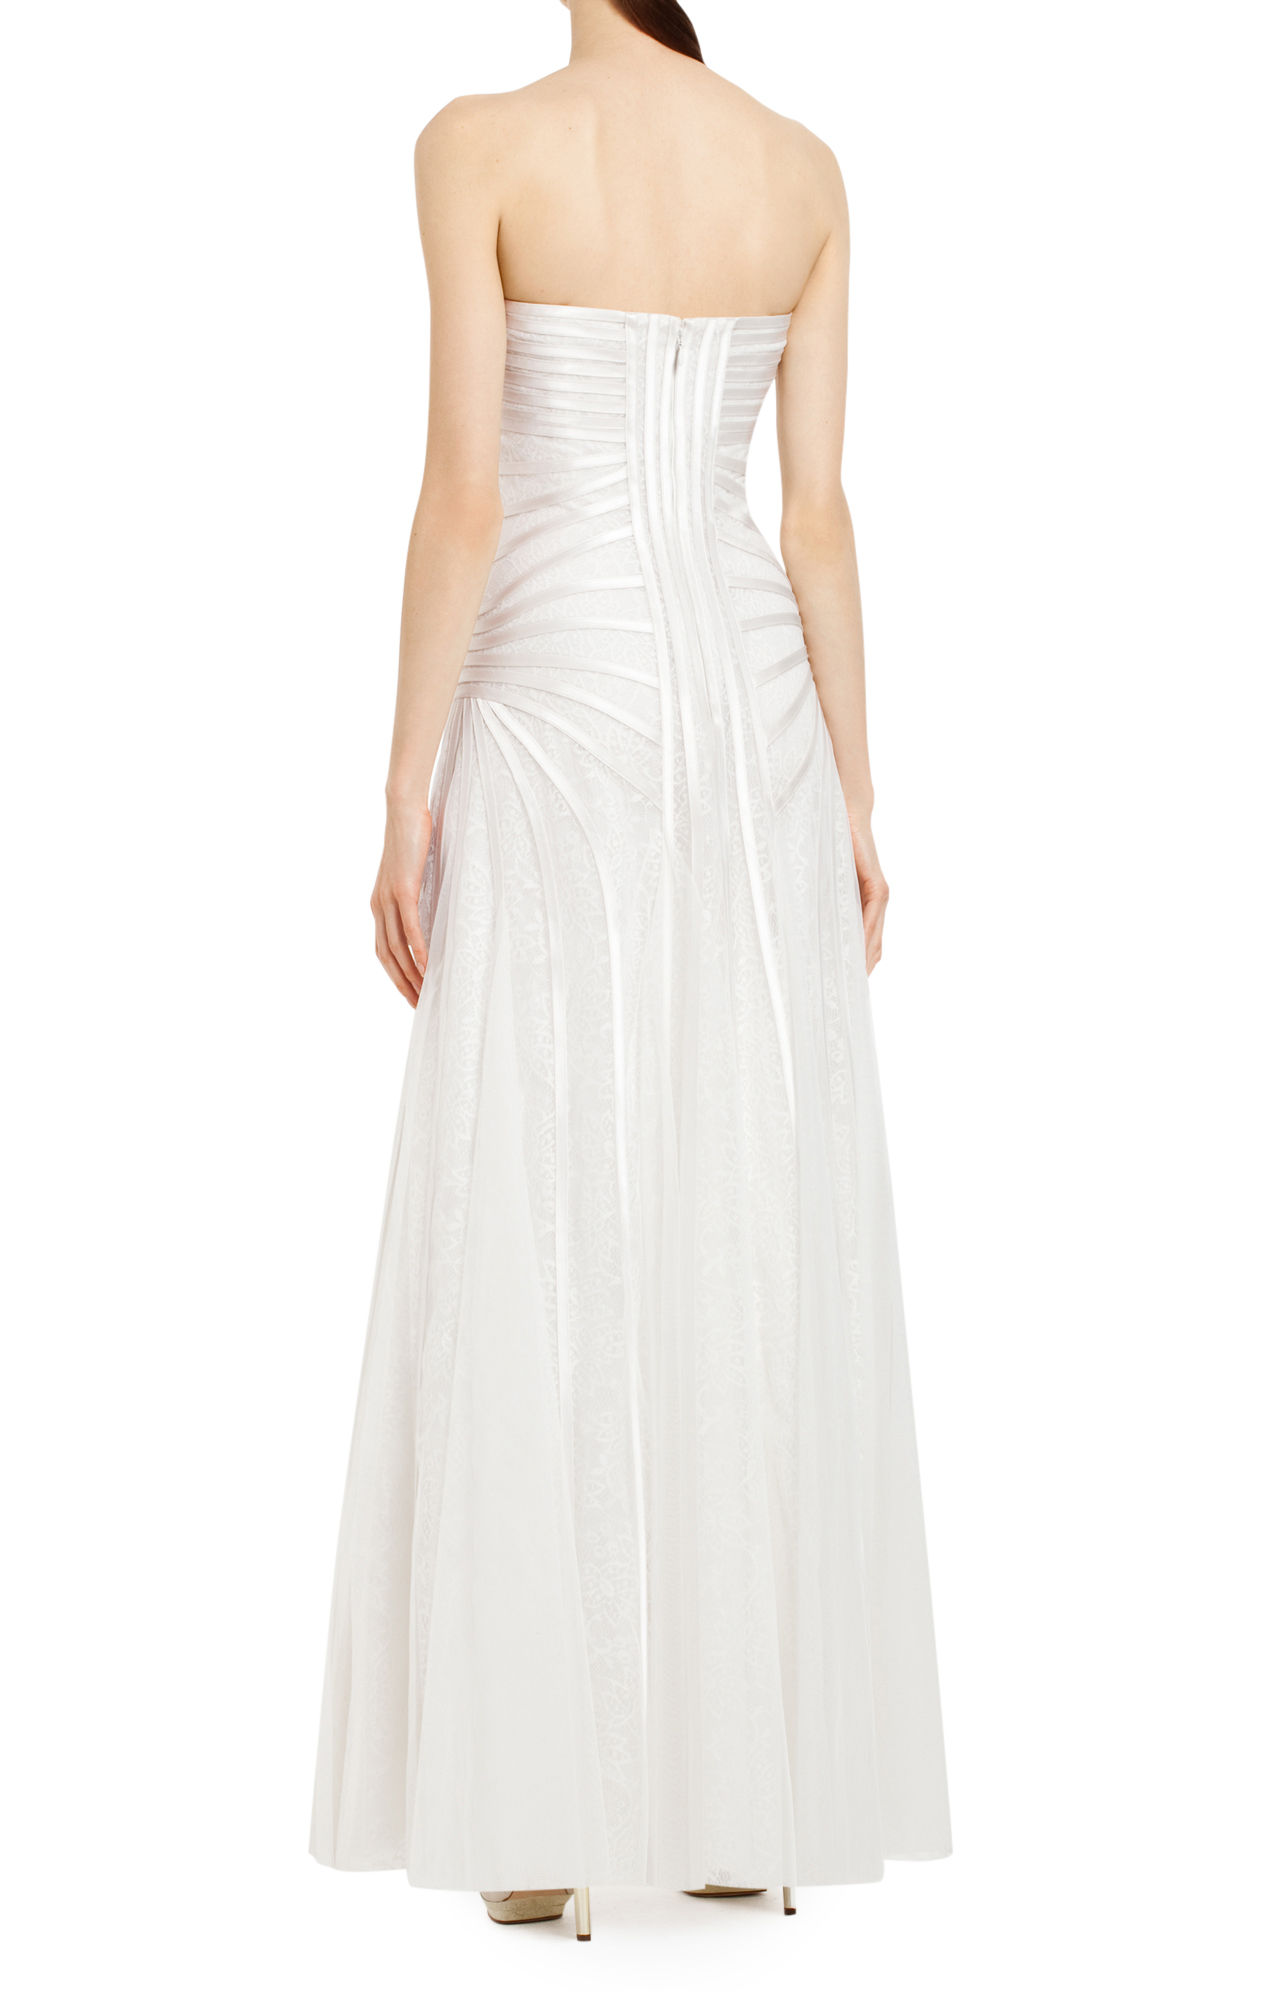 bcbg wedding dresses bcbg wedding dress max azria bridal magnolia onewed 1531